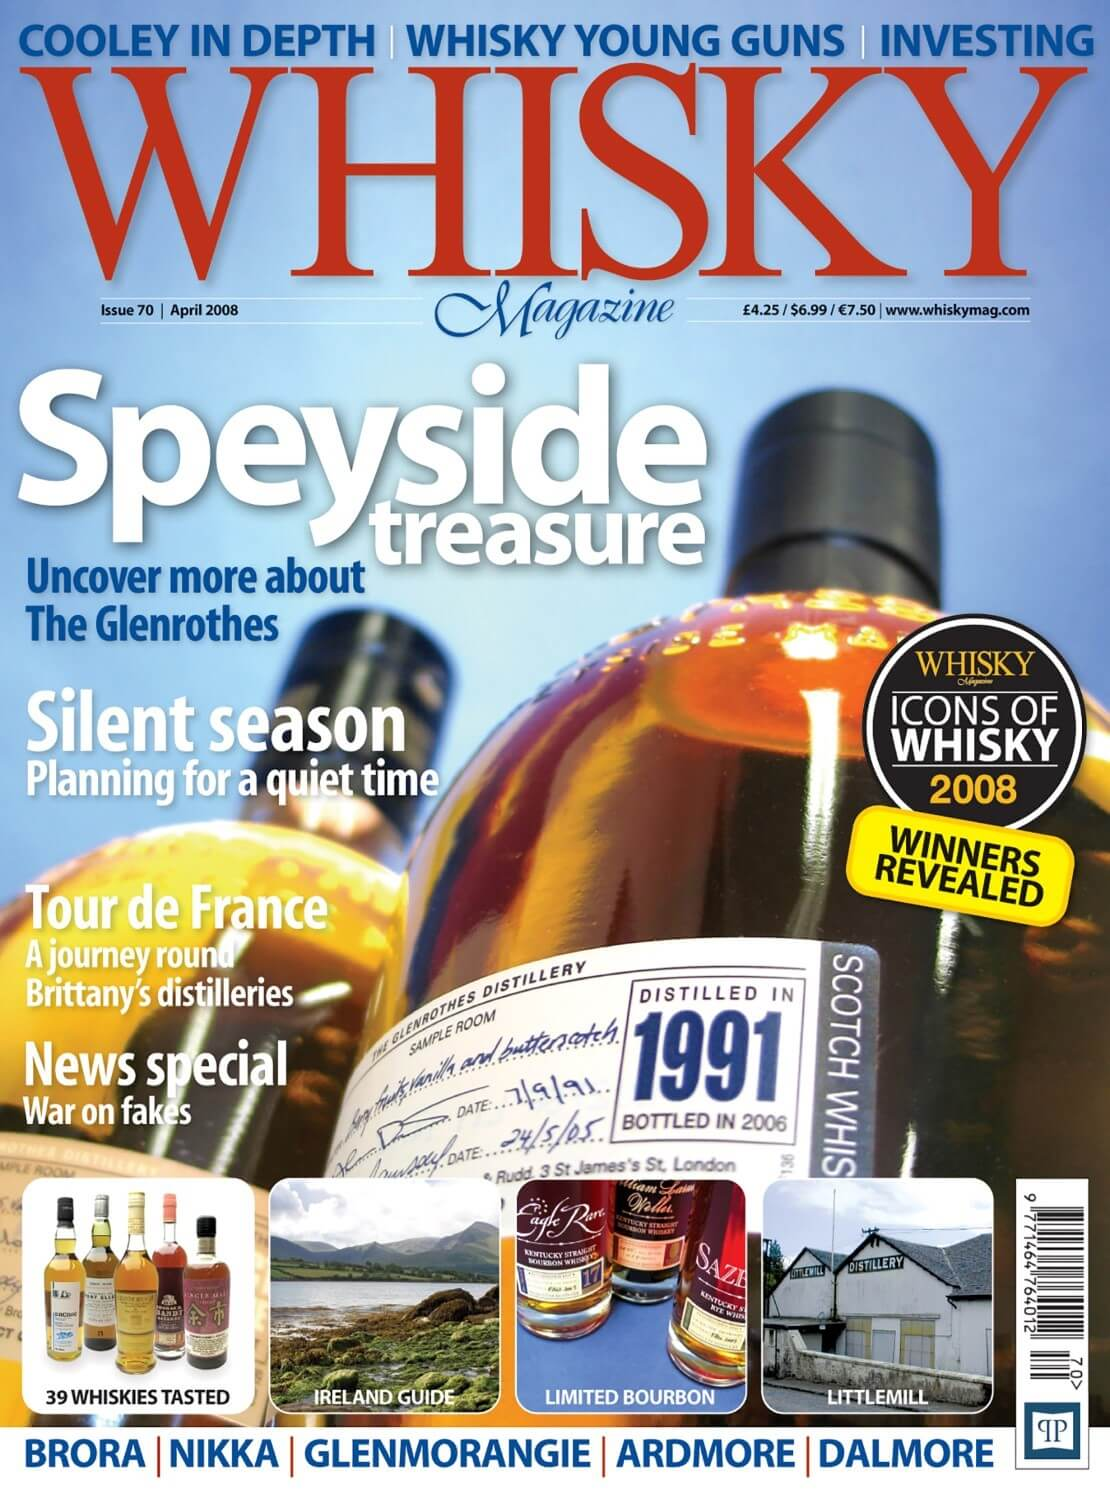 Icons of Whisky 2008 Speyside Treasures Silent Season Tour de France Ireland Guide